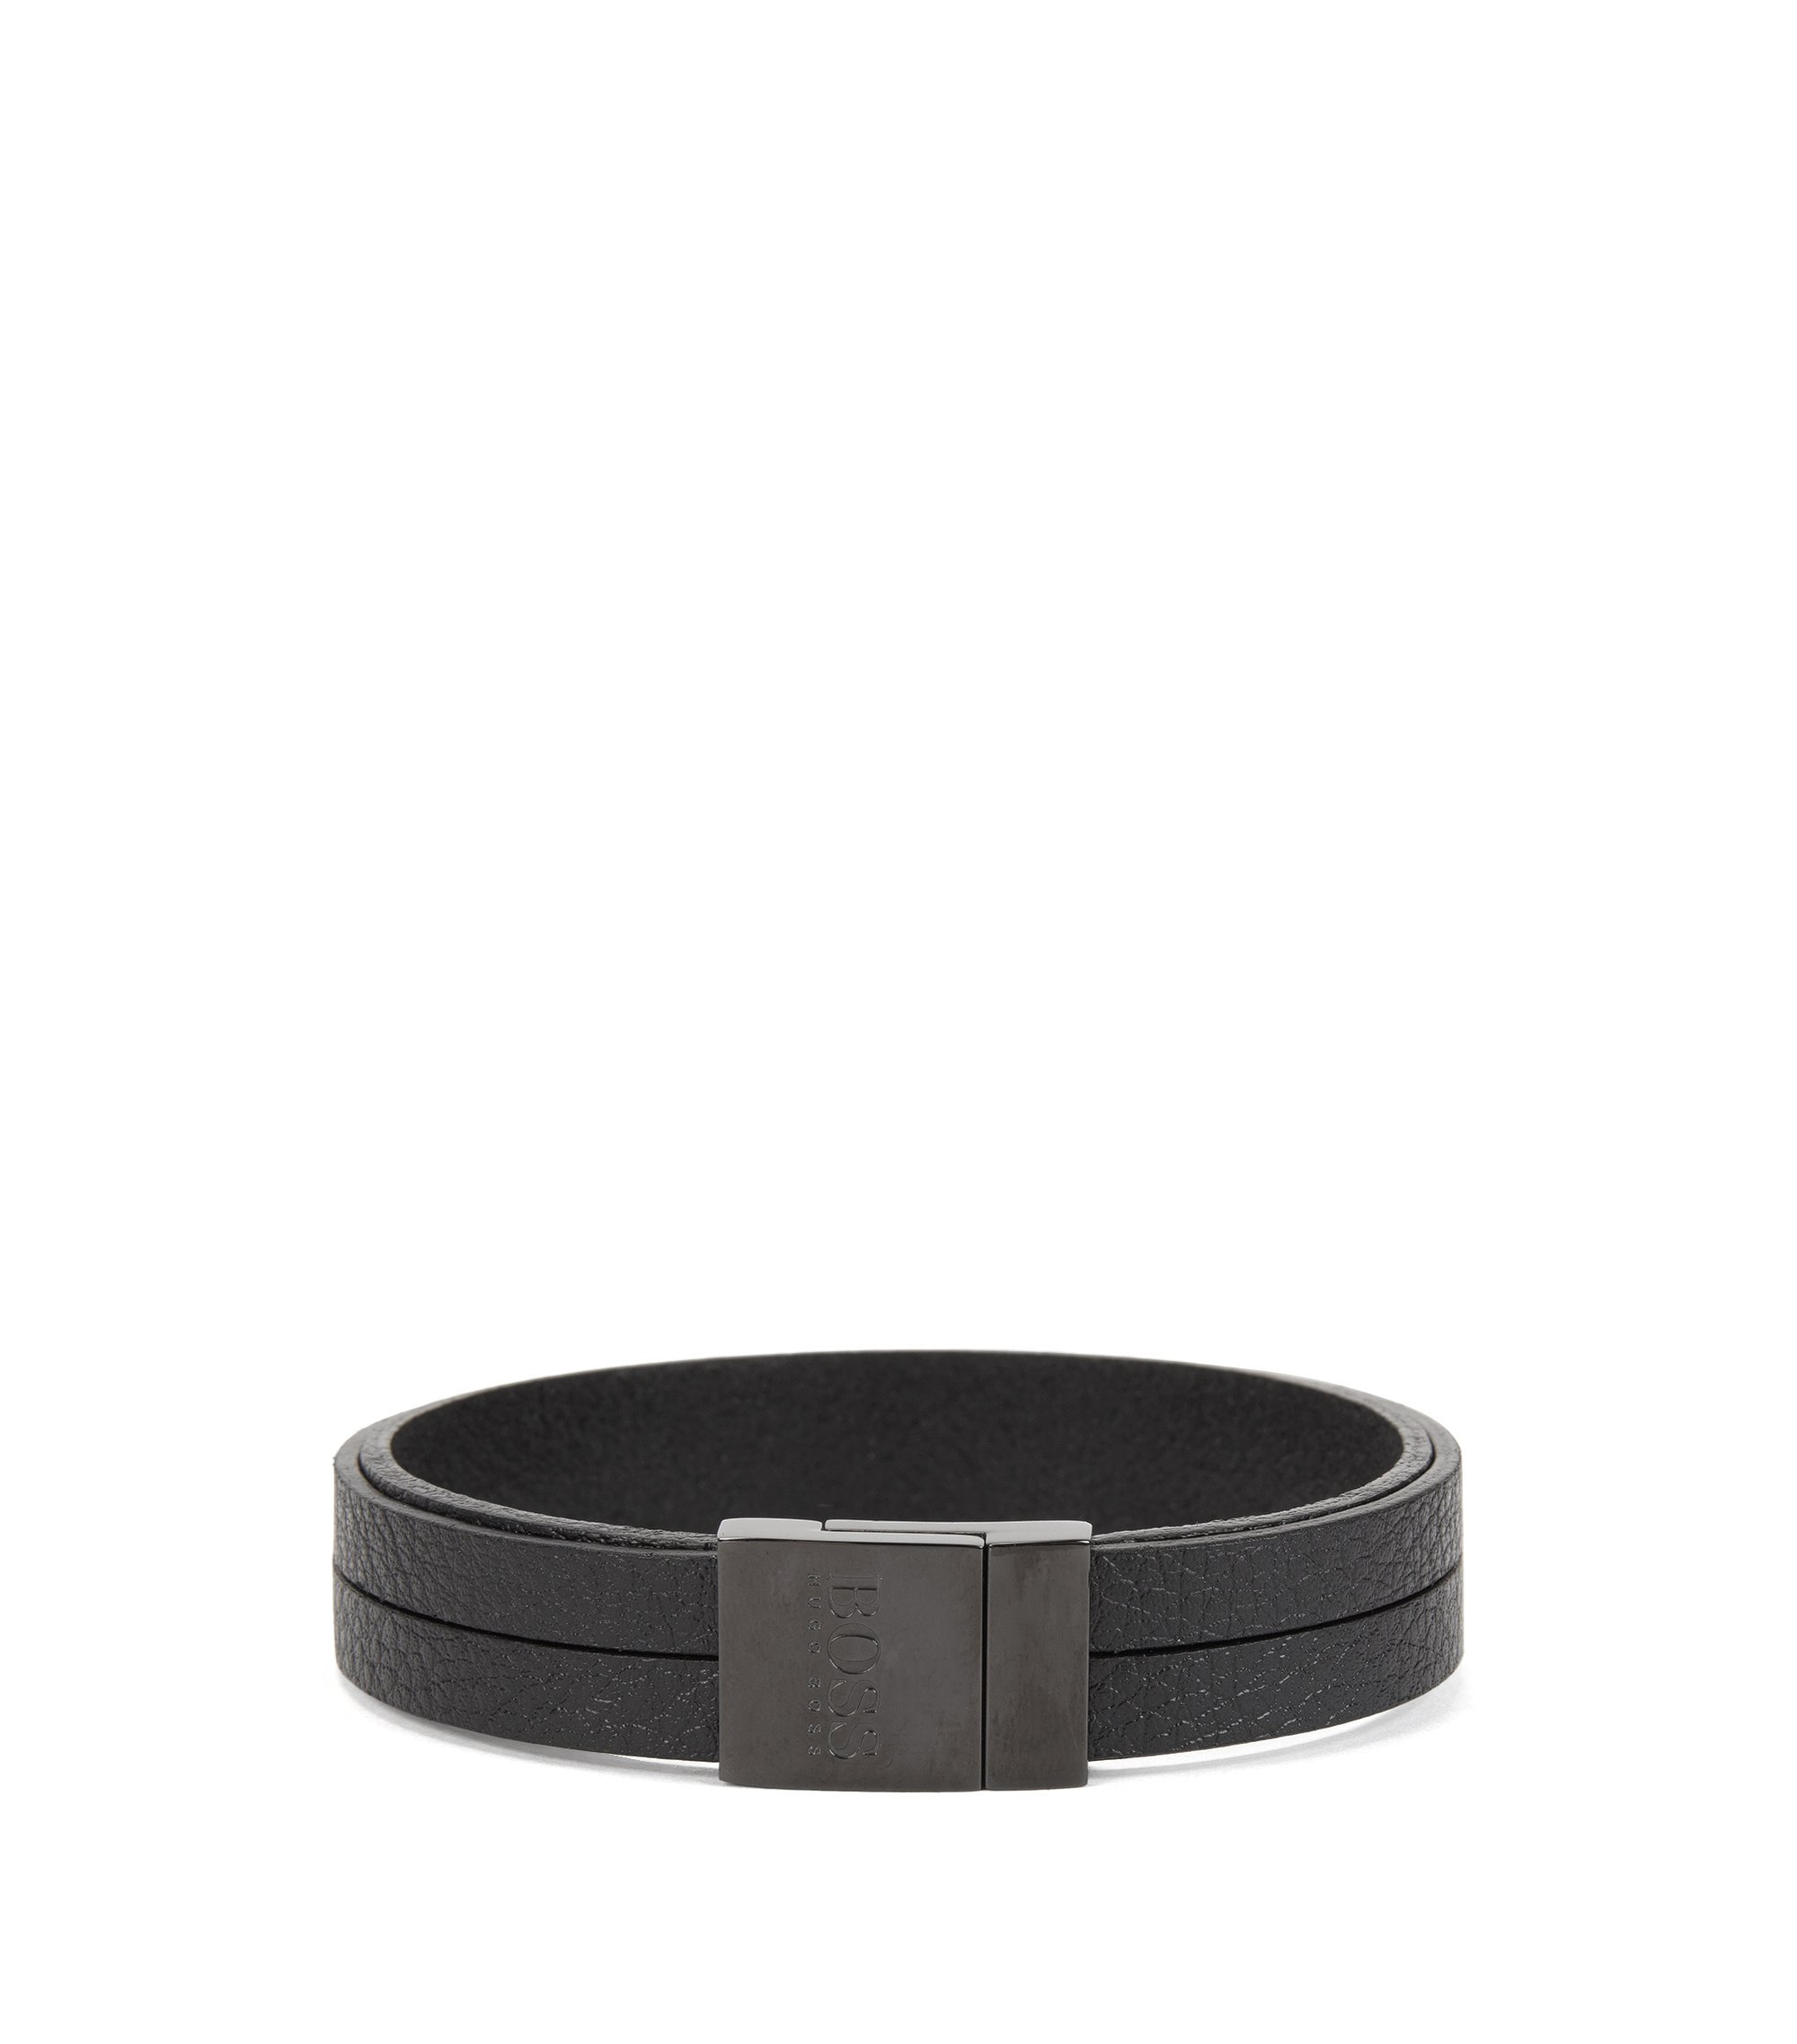 Leather bracelet with magnetic closure, Black